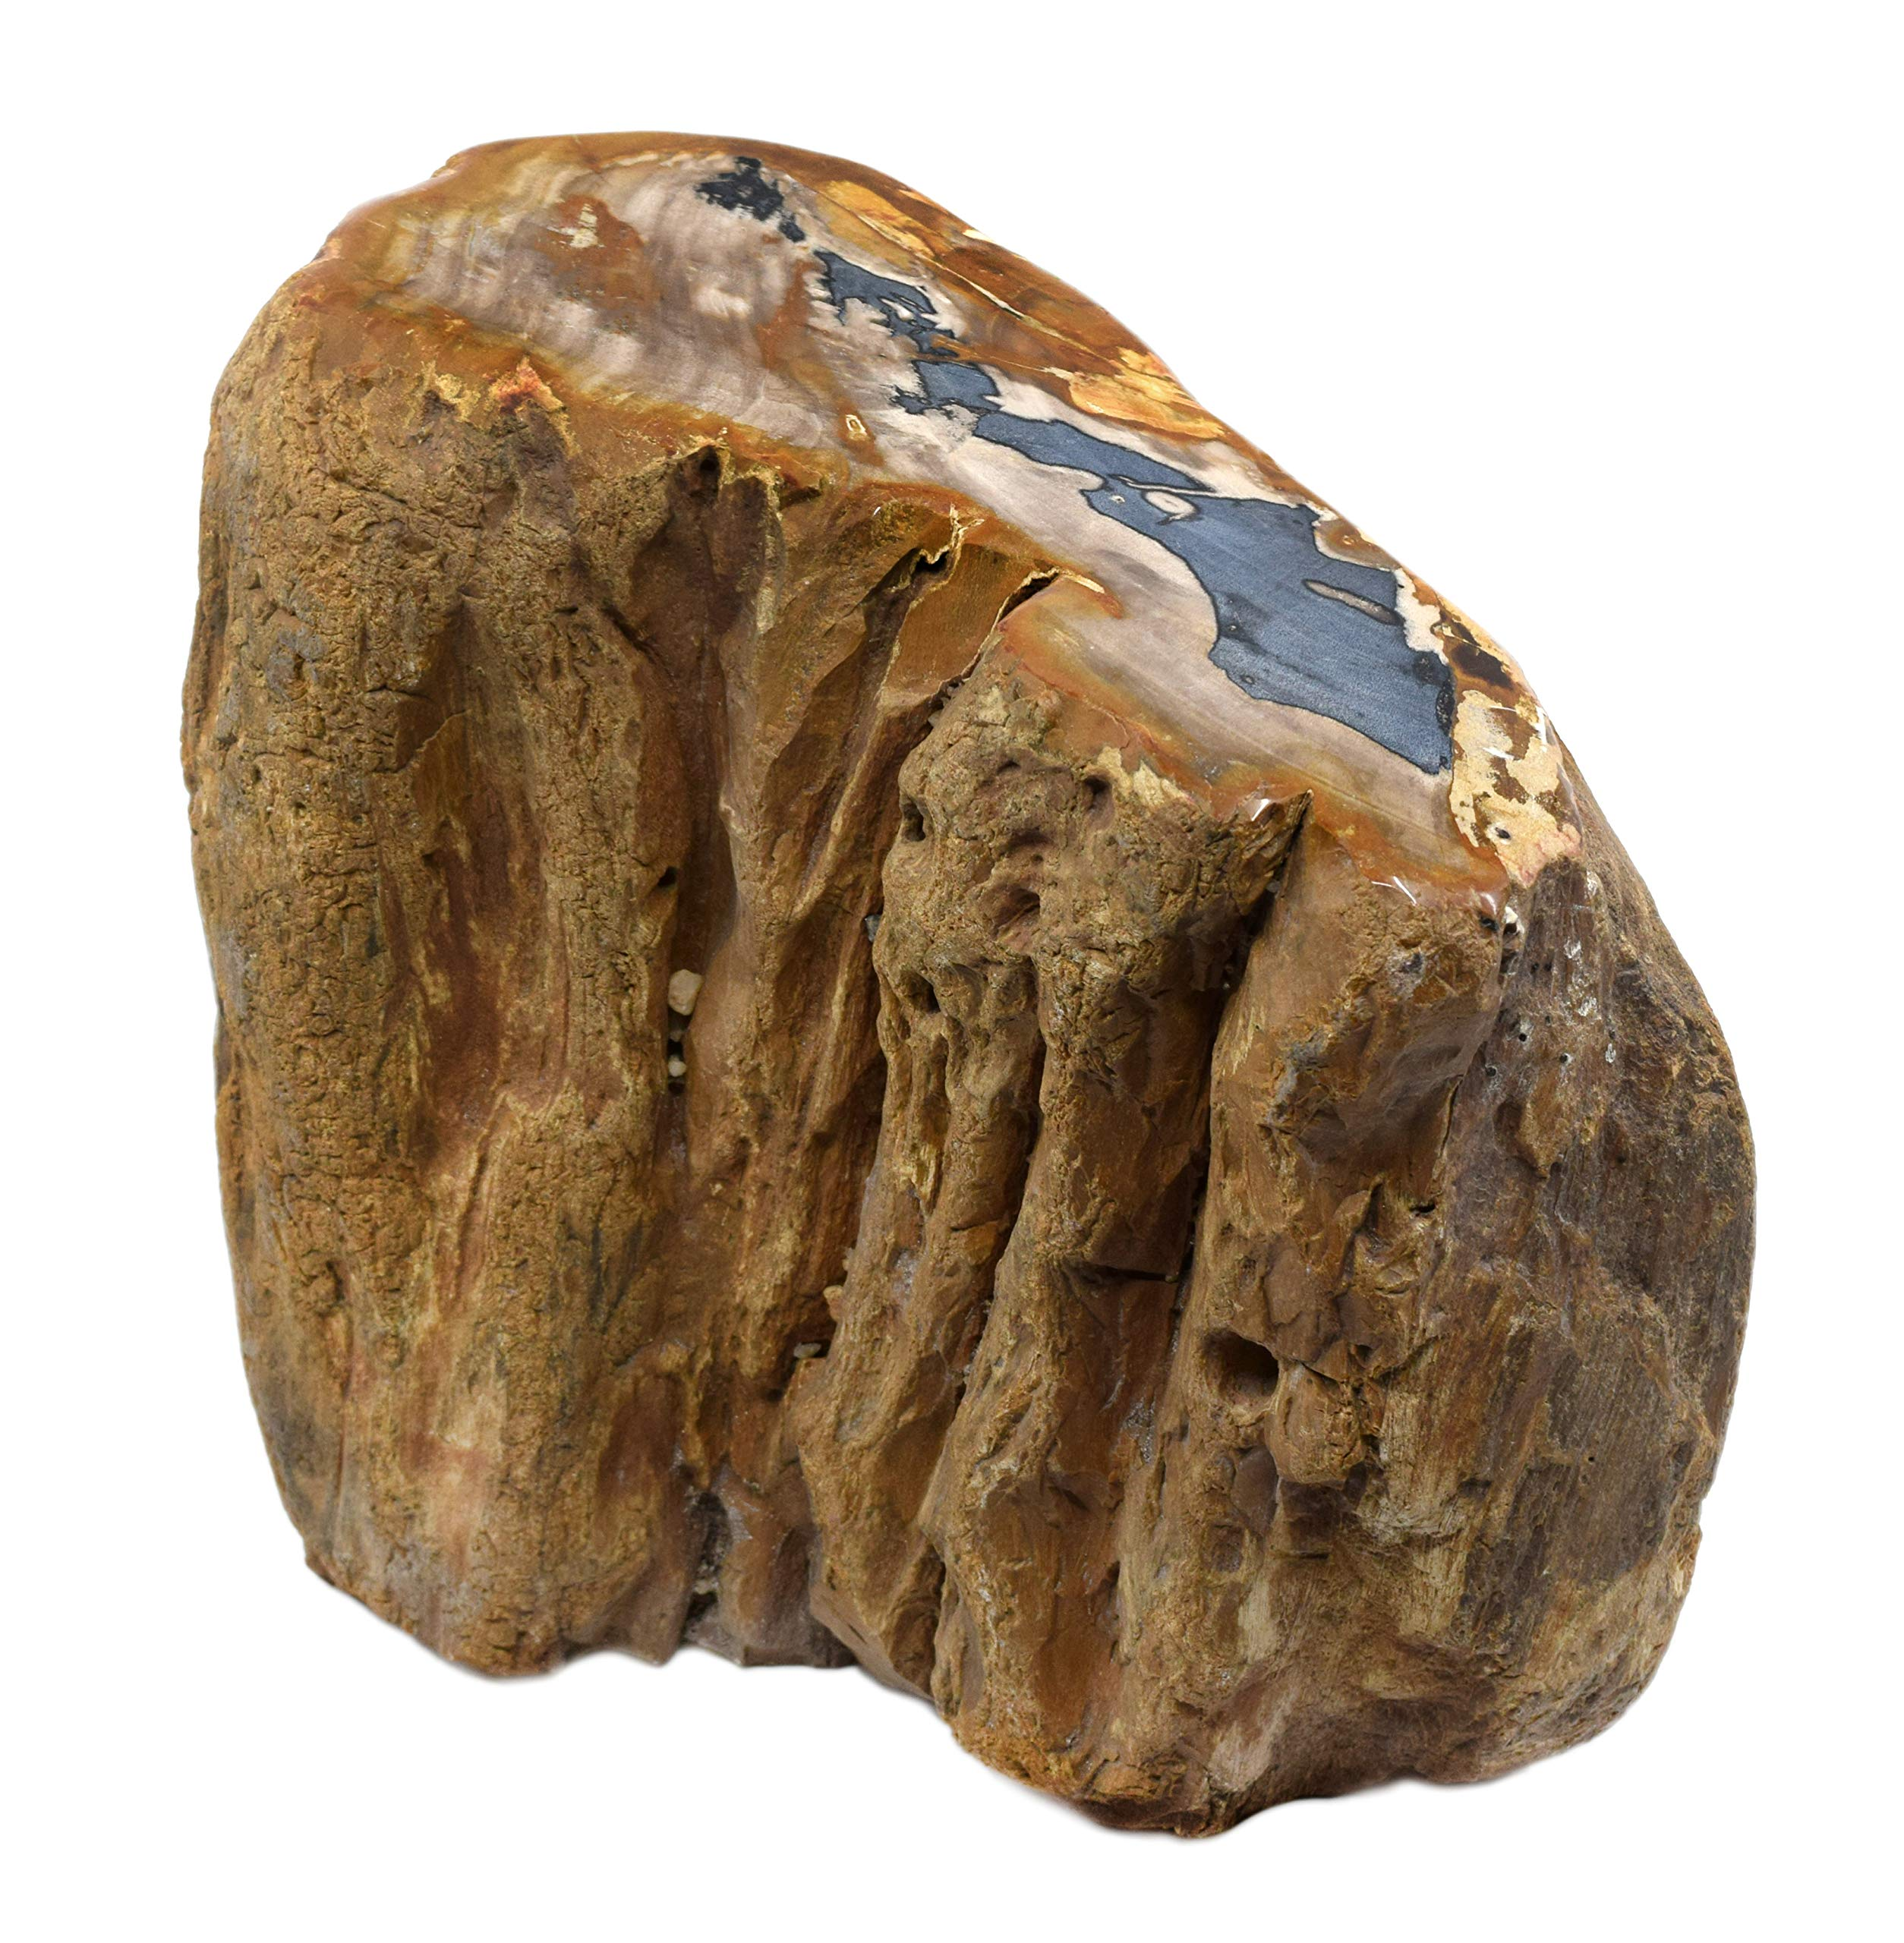 Petrified Wood, 24lbs - Freeform Piece with Polished, Angled Cross Section Cut - 100% Authentic Fossilized Wood - The Artisan Mined Series by hBAR